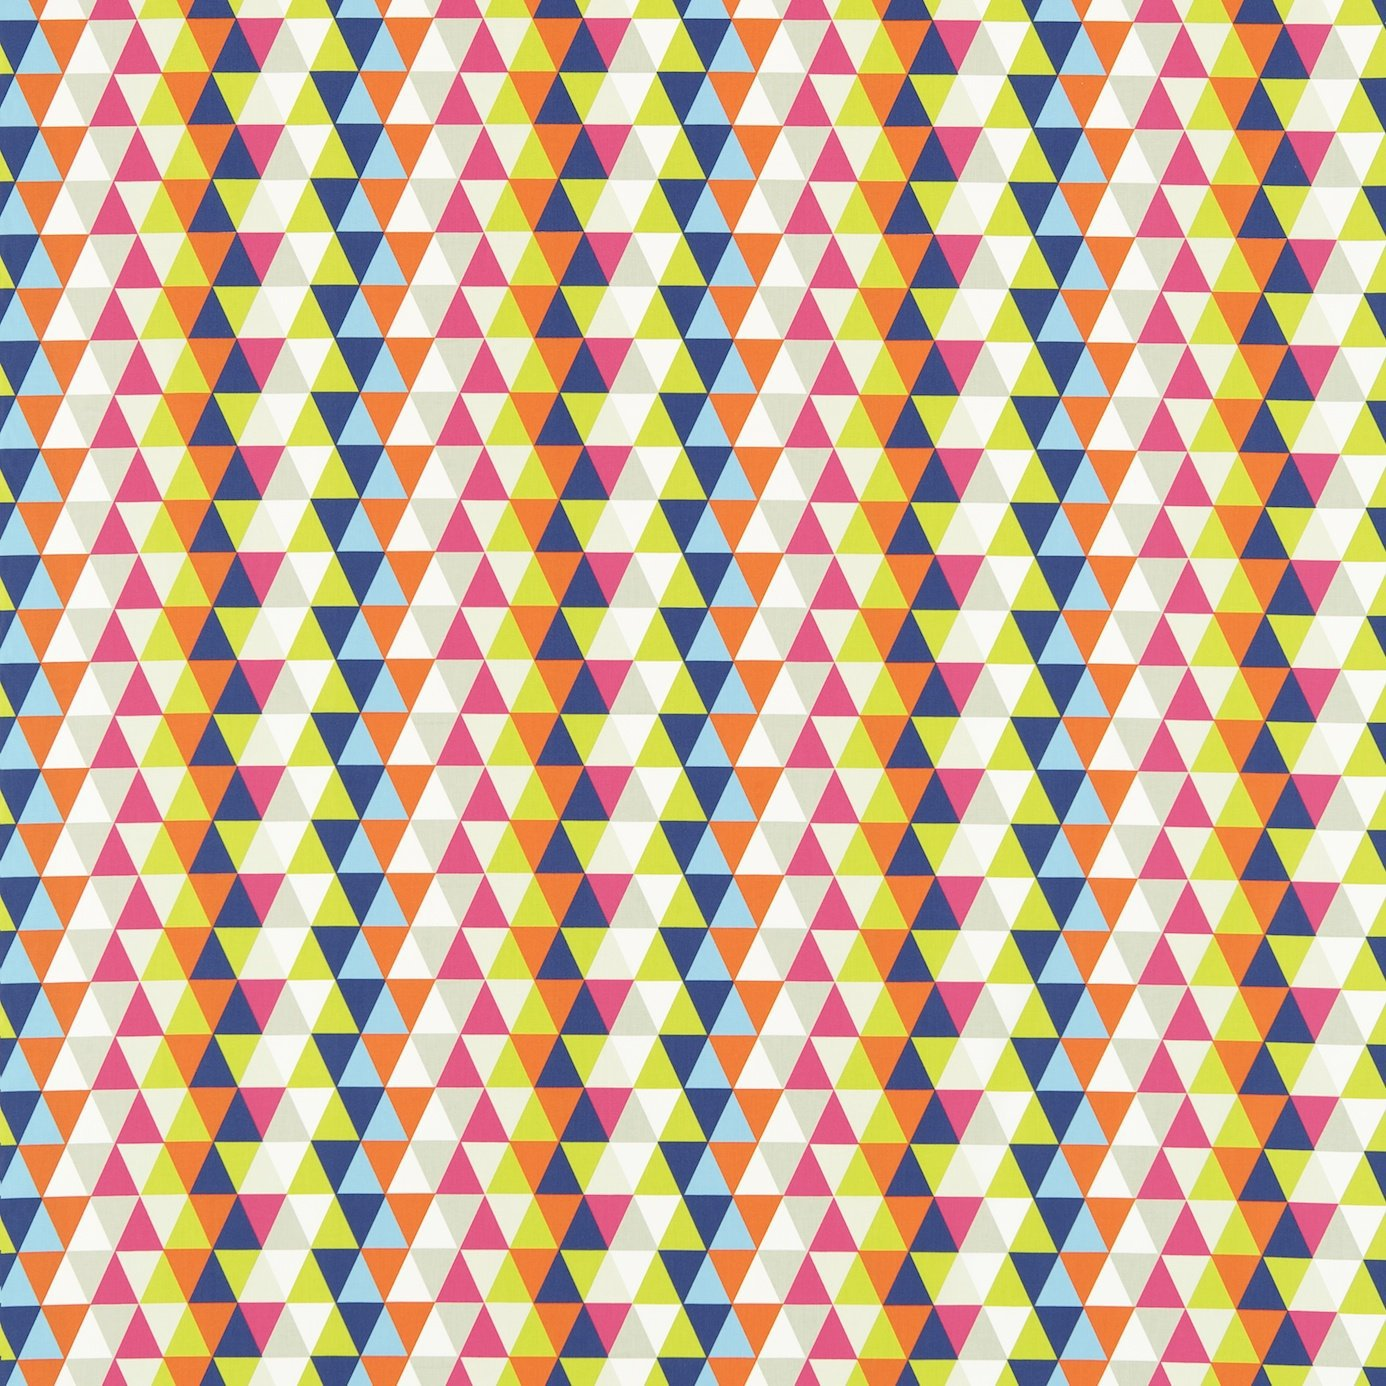 Harlequin Pattern Wallpaper Harlequin all about me 1386x1386